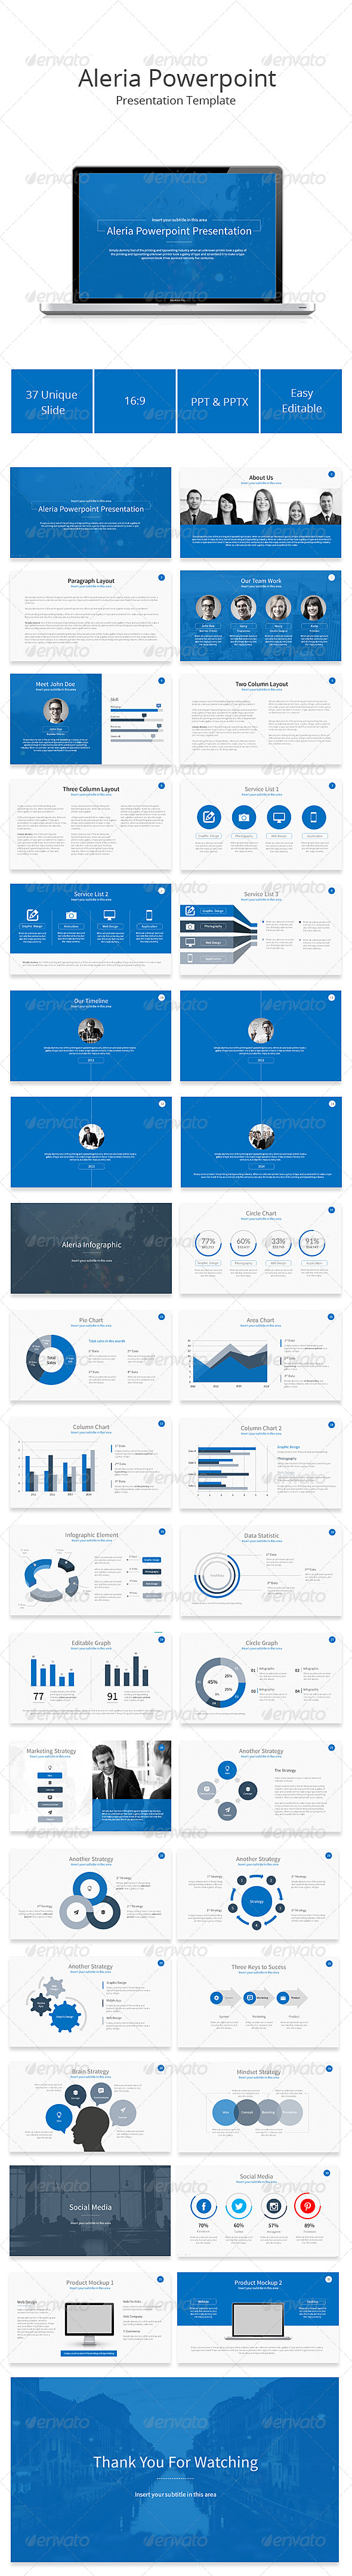 GraphicRiver Aleria Powerpoint Presentation Template 8200561